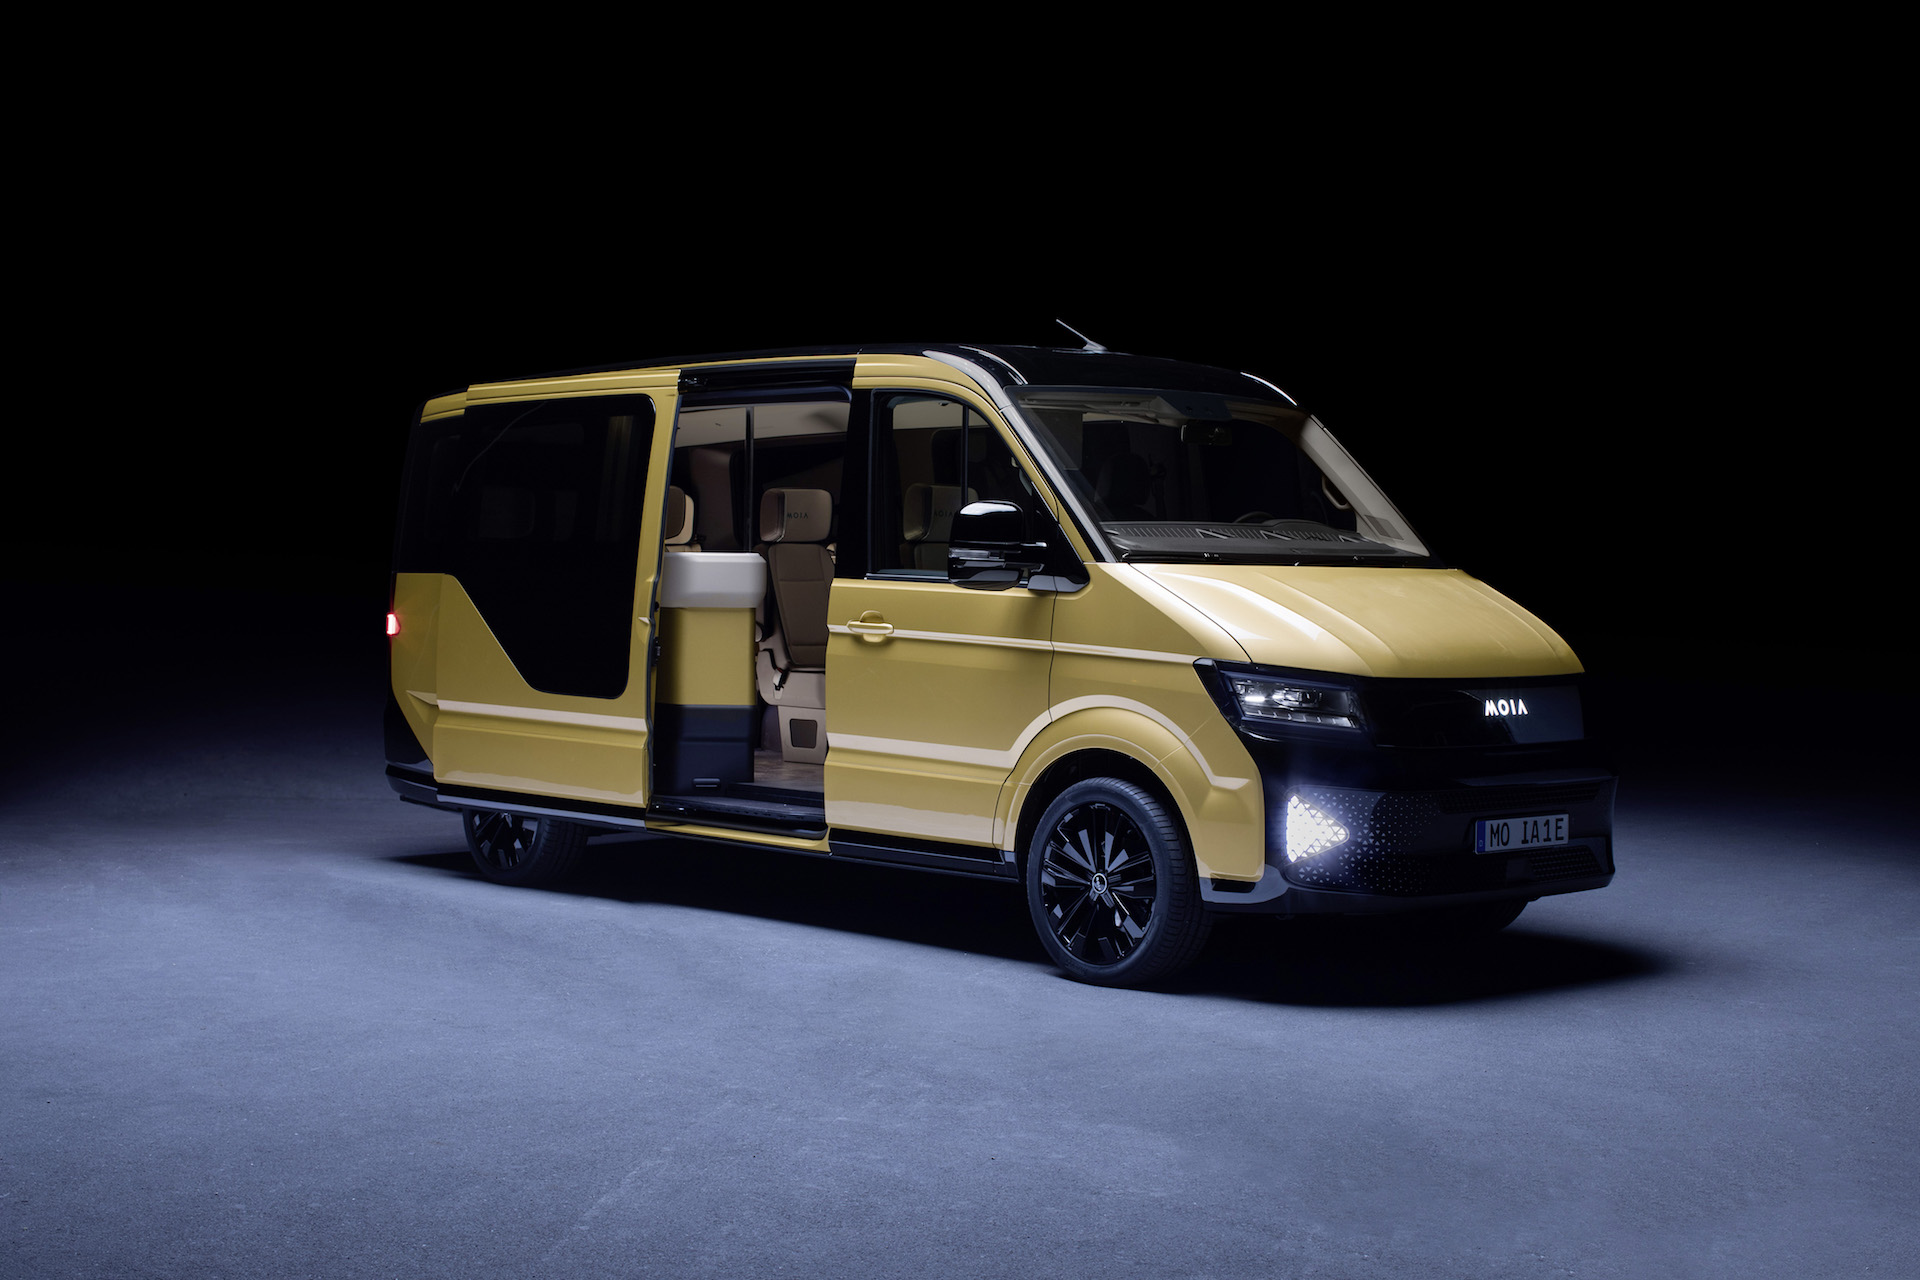 64f9e43f6e Volkswagen Moia electric mobility van is VW s Uber ride-sharing rival